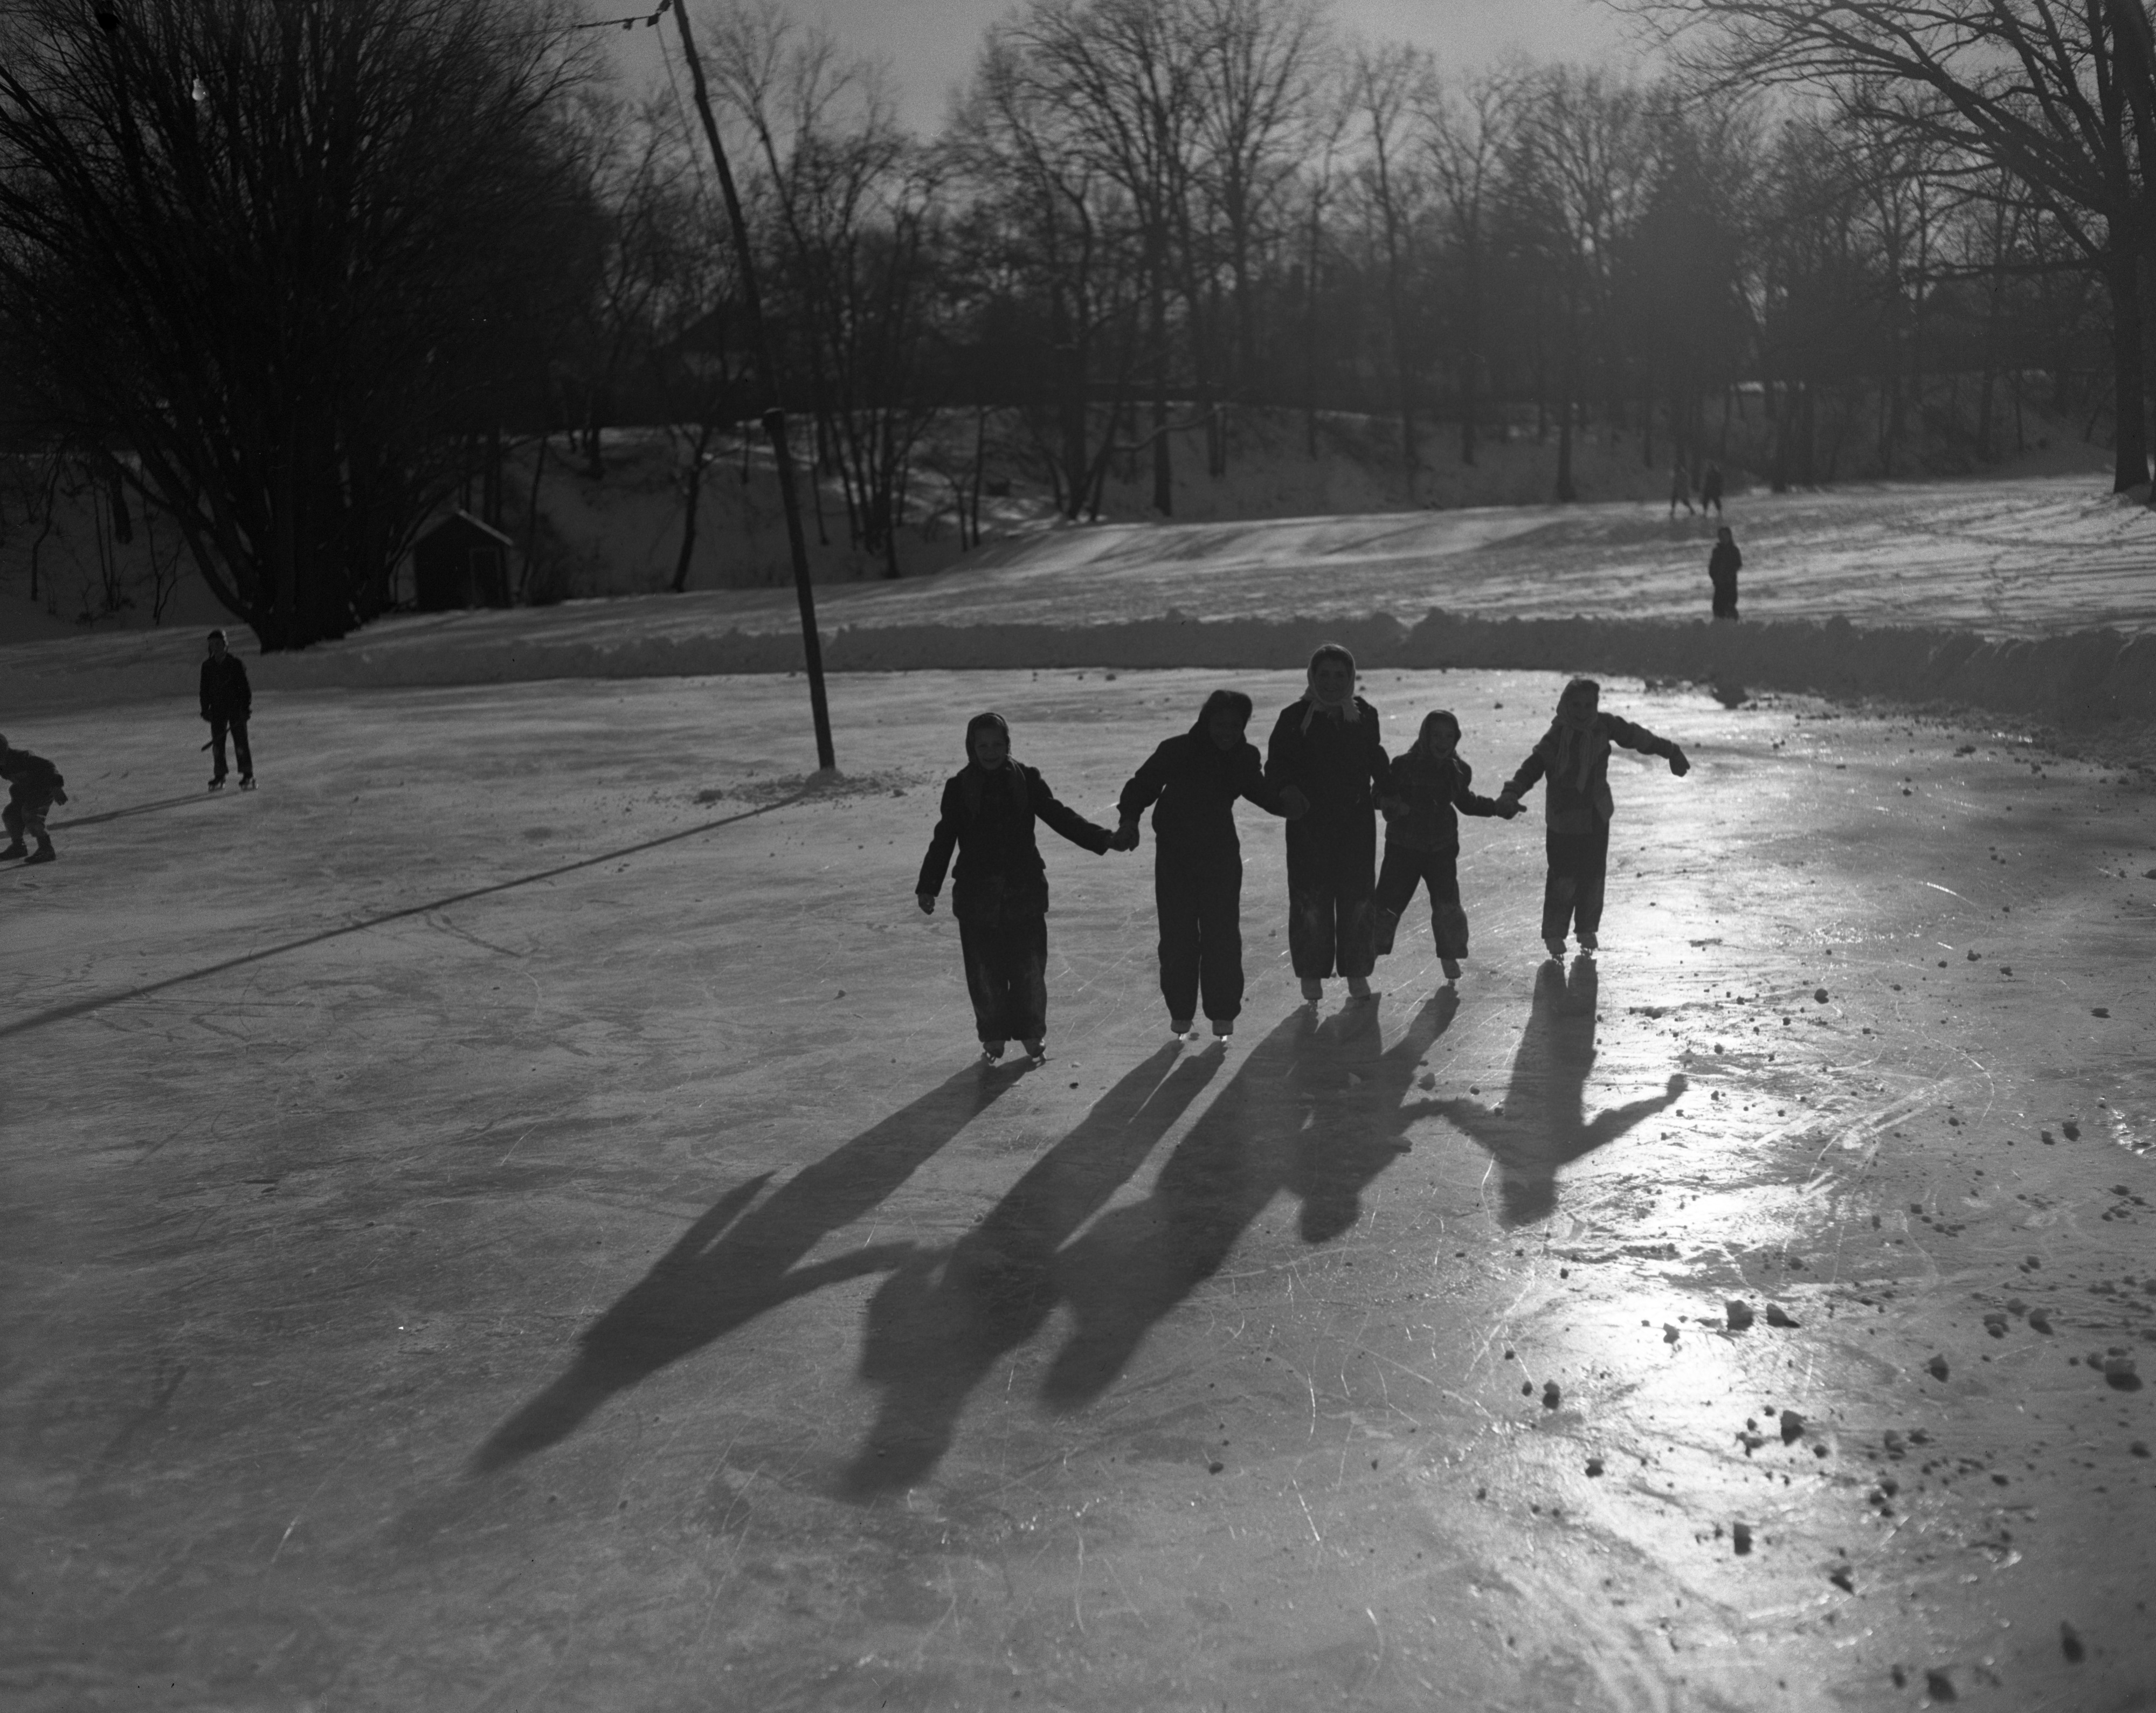 Winter fun at West Park, December 1950 image